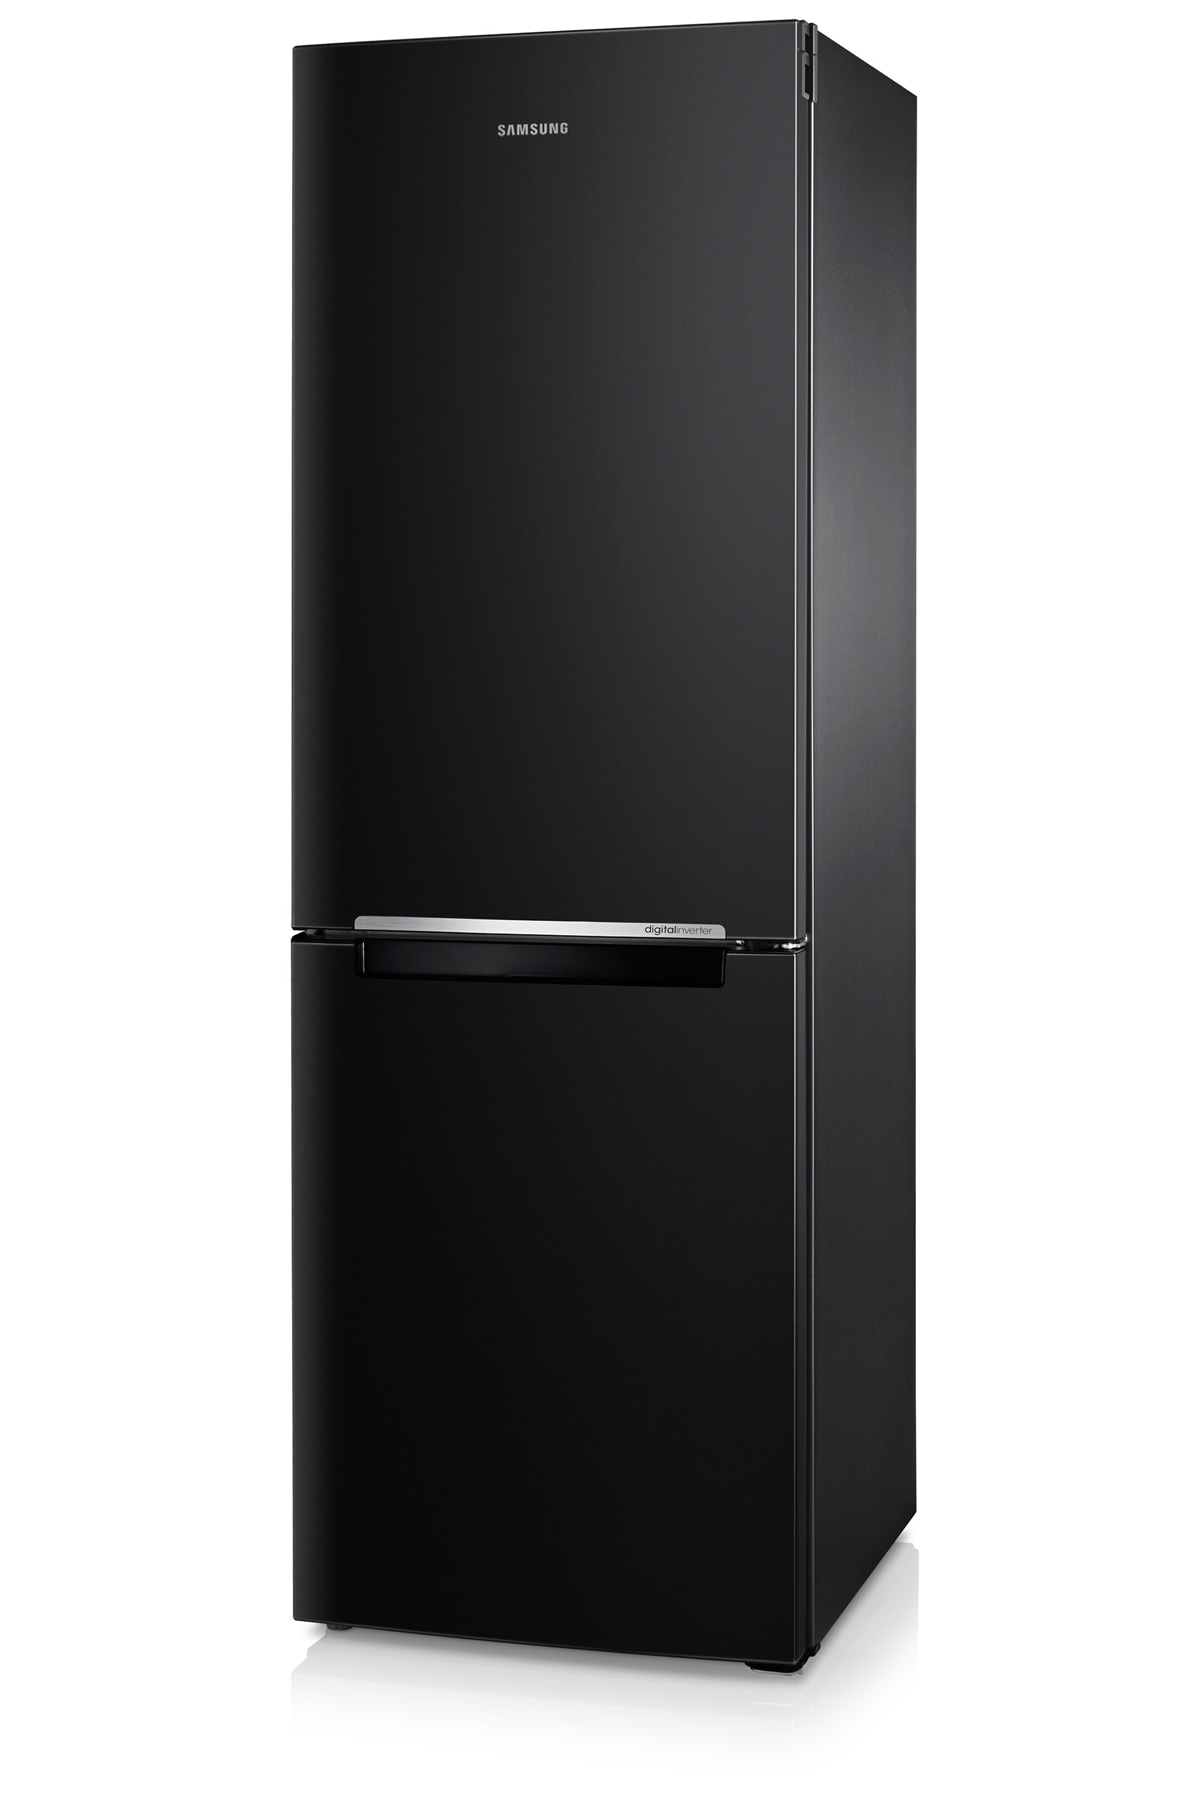 RB29FSRNDBC Fridge Freezer Right perspective Black